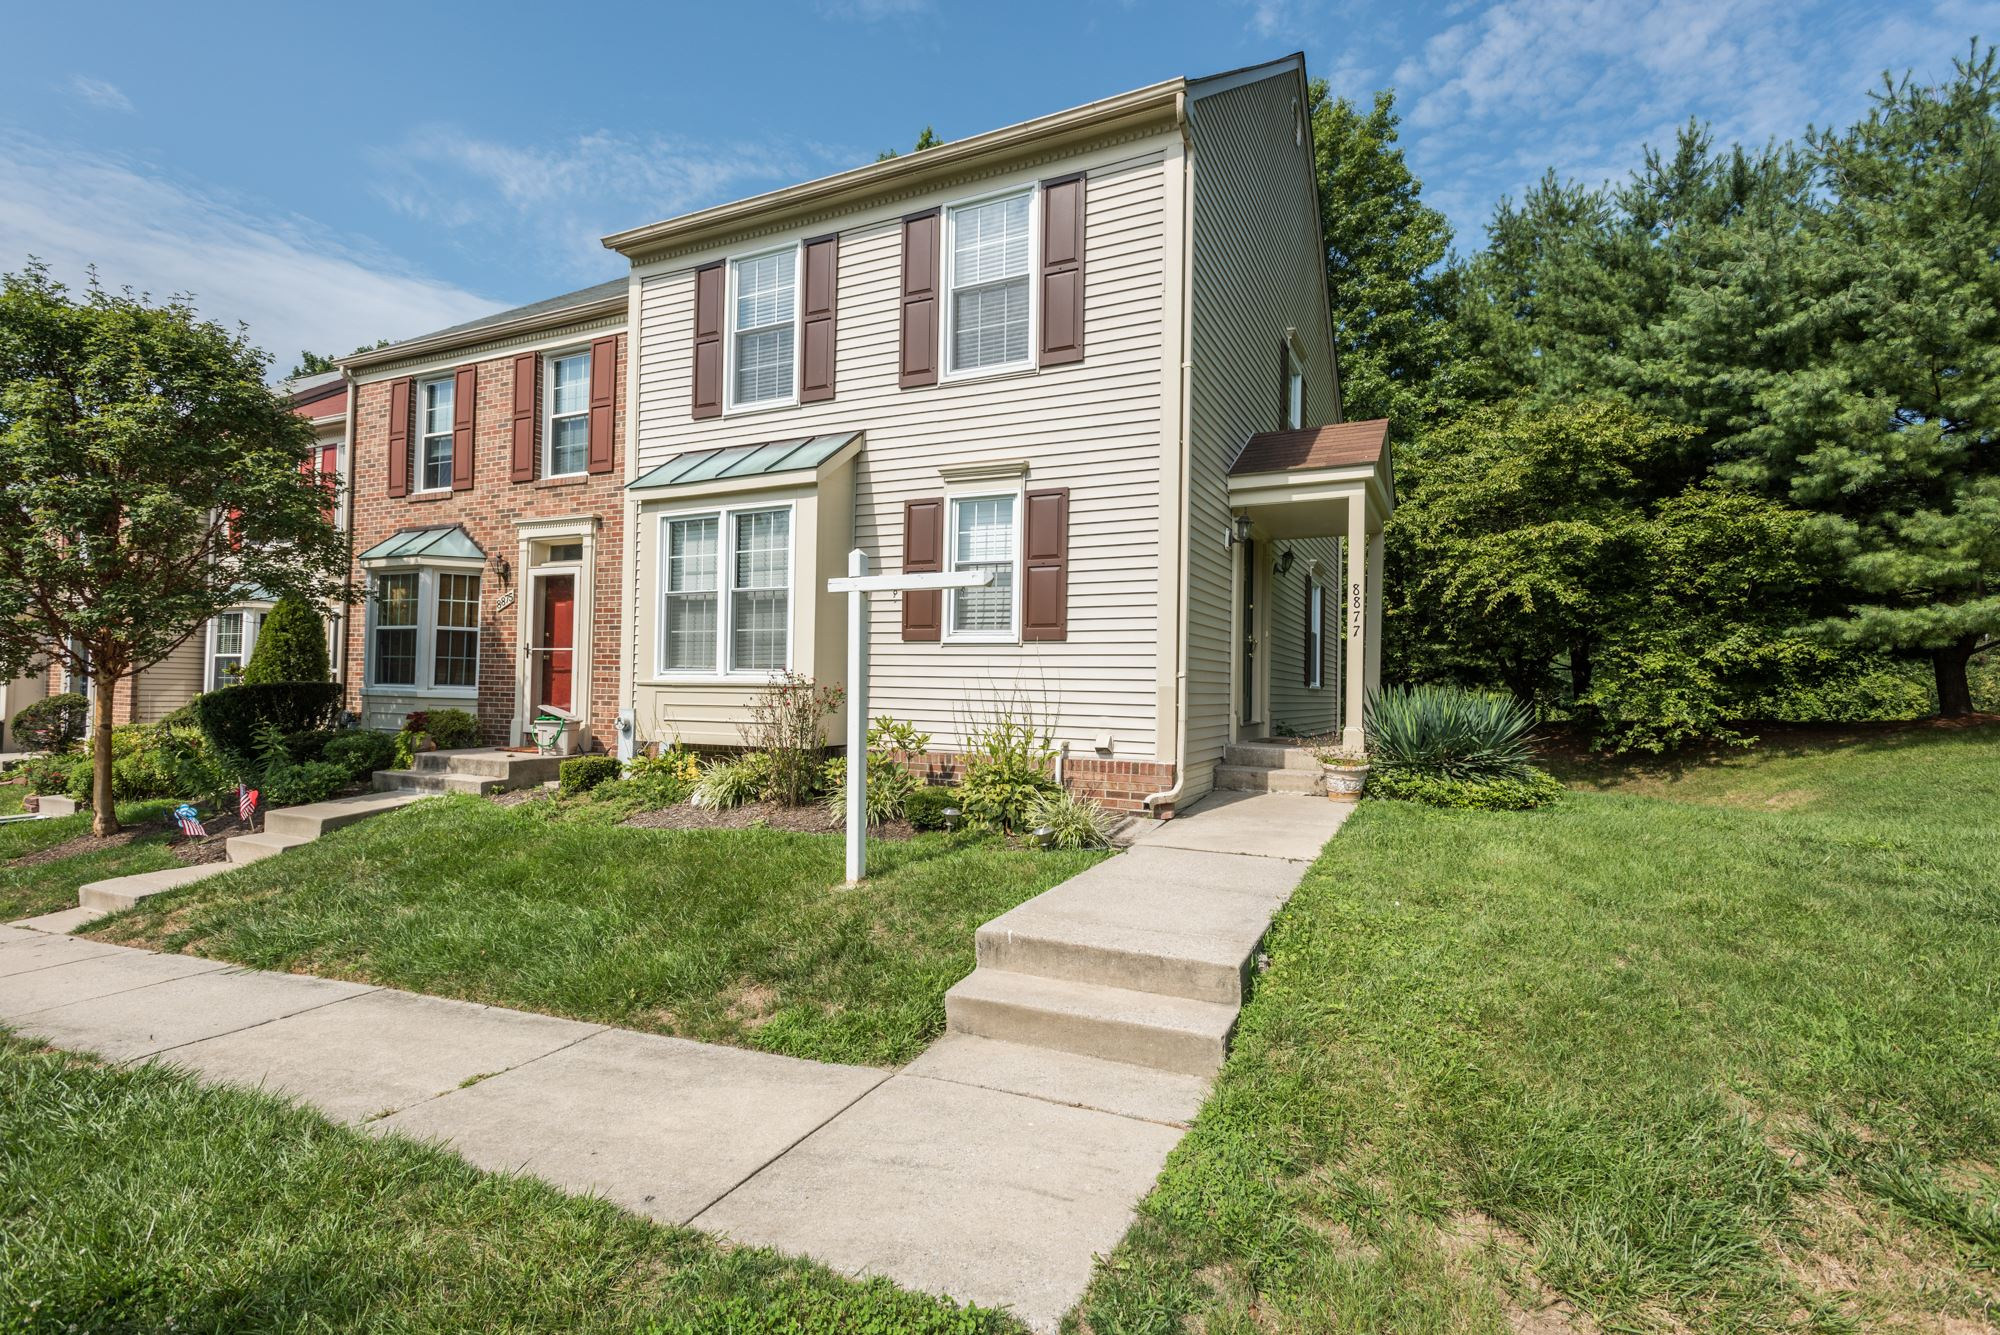 SOLD: Rare End Unit Townhome in Ellicott City